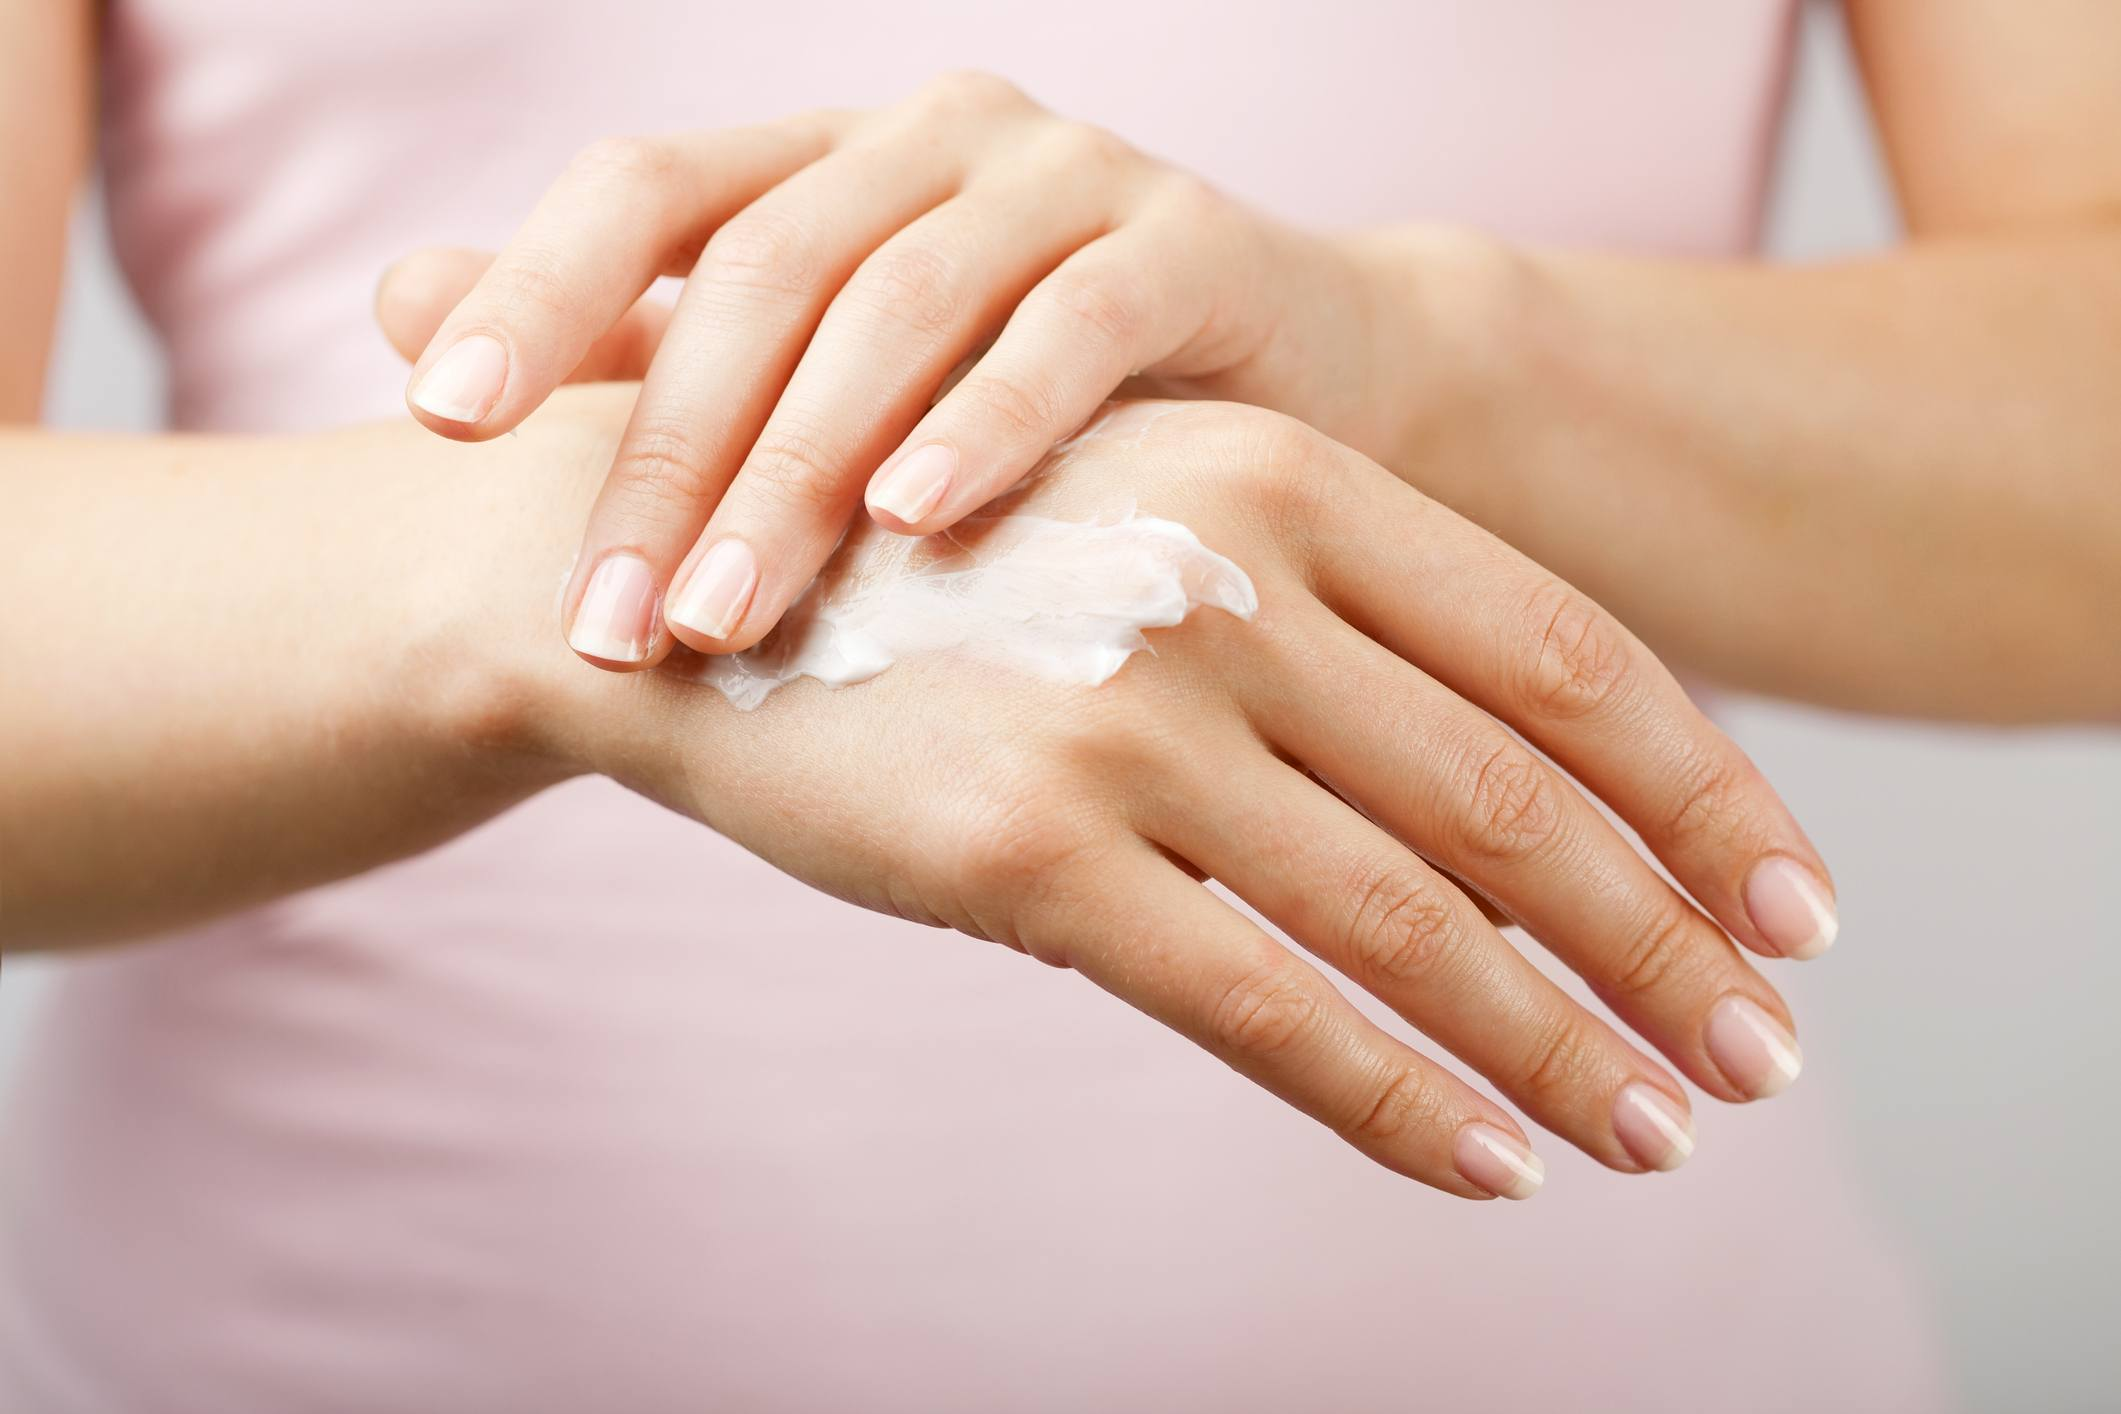 Moisturizing cream being rub into skin on hands